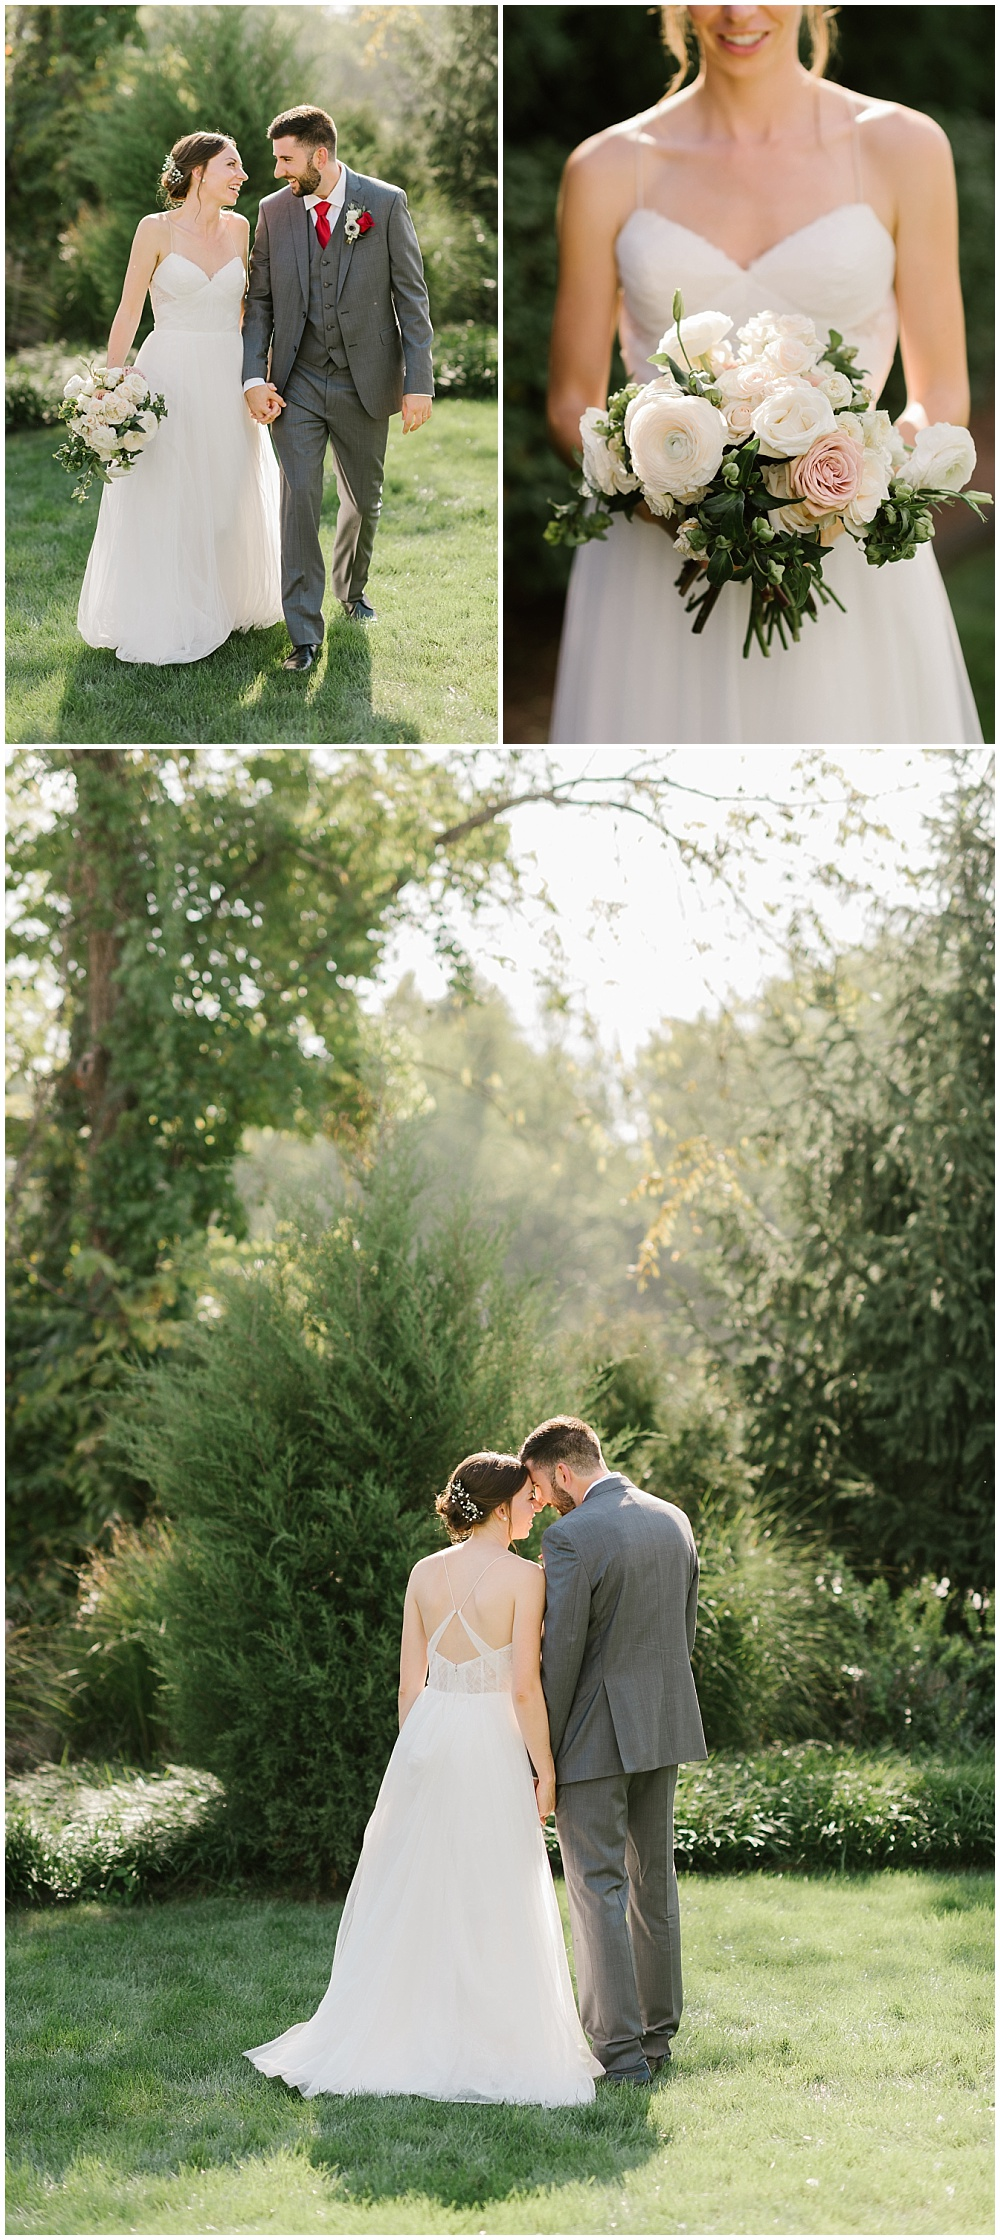 Bride and groom outdoor garden portraits and a bridal bouquet made up of white and soft blush flowers Fall garden-inspired wedding at the Ritz Charles Garden Pavilion in Carmel, Indiana | Jessica Dum Wedding Coordination